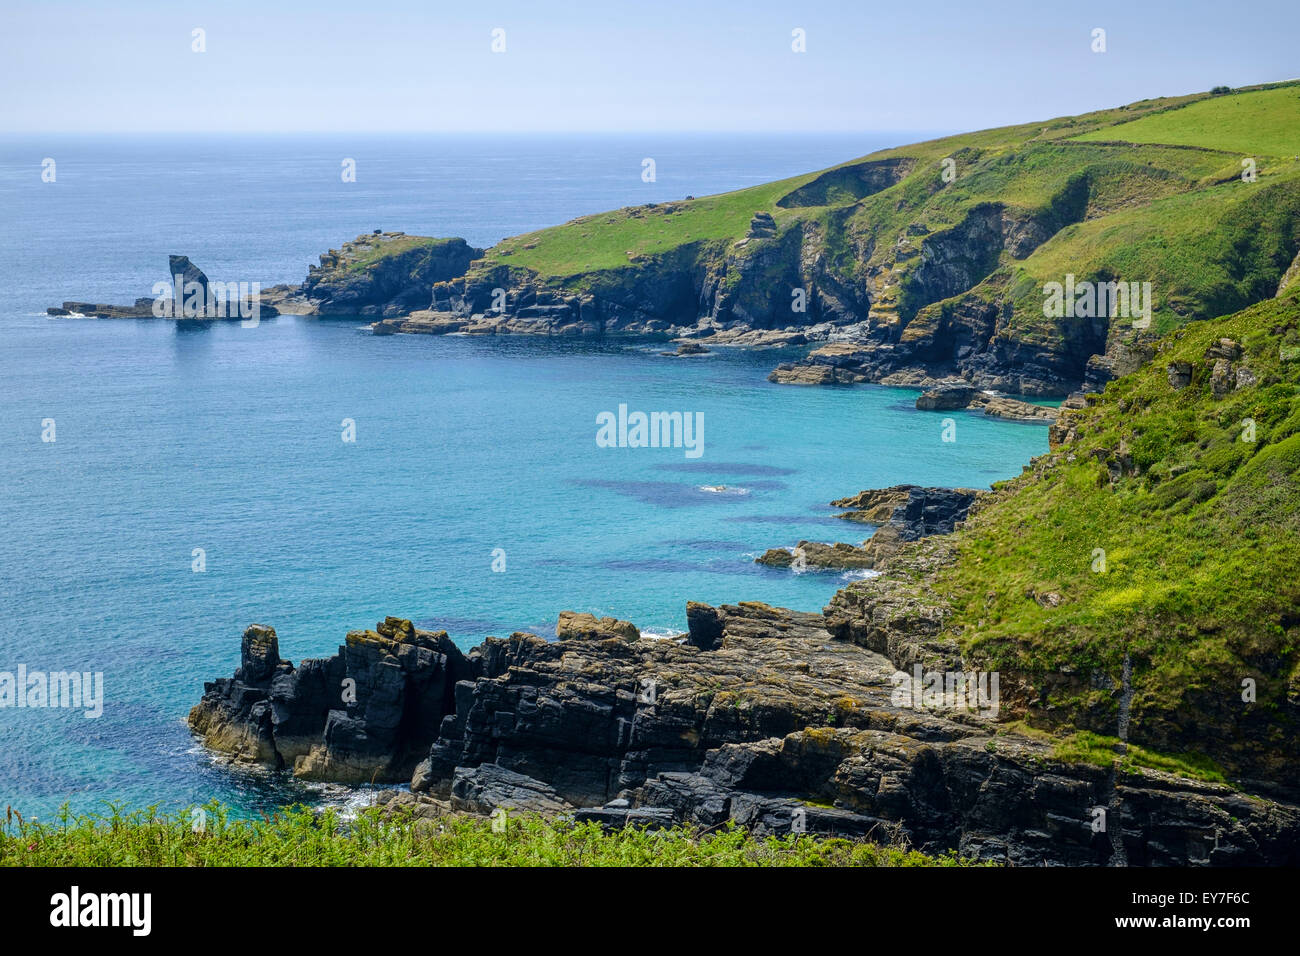 View of Cornwall coast from South West Coast Path above Housel Bay, Lizard Peninsula, West Cornwall, UK in summer - Stock Image